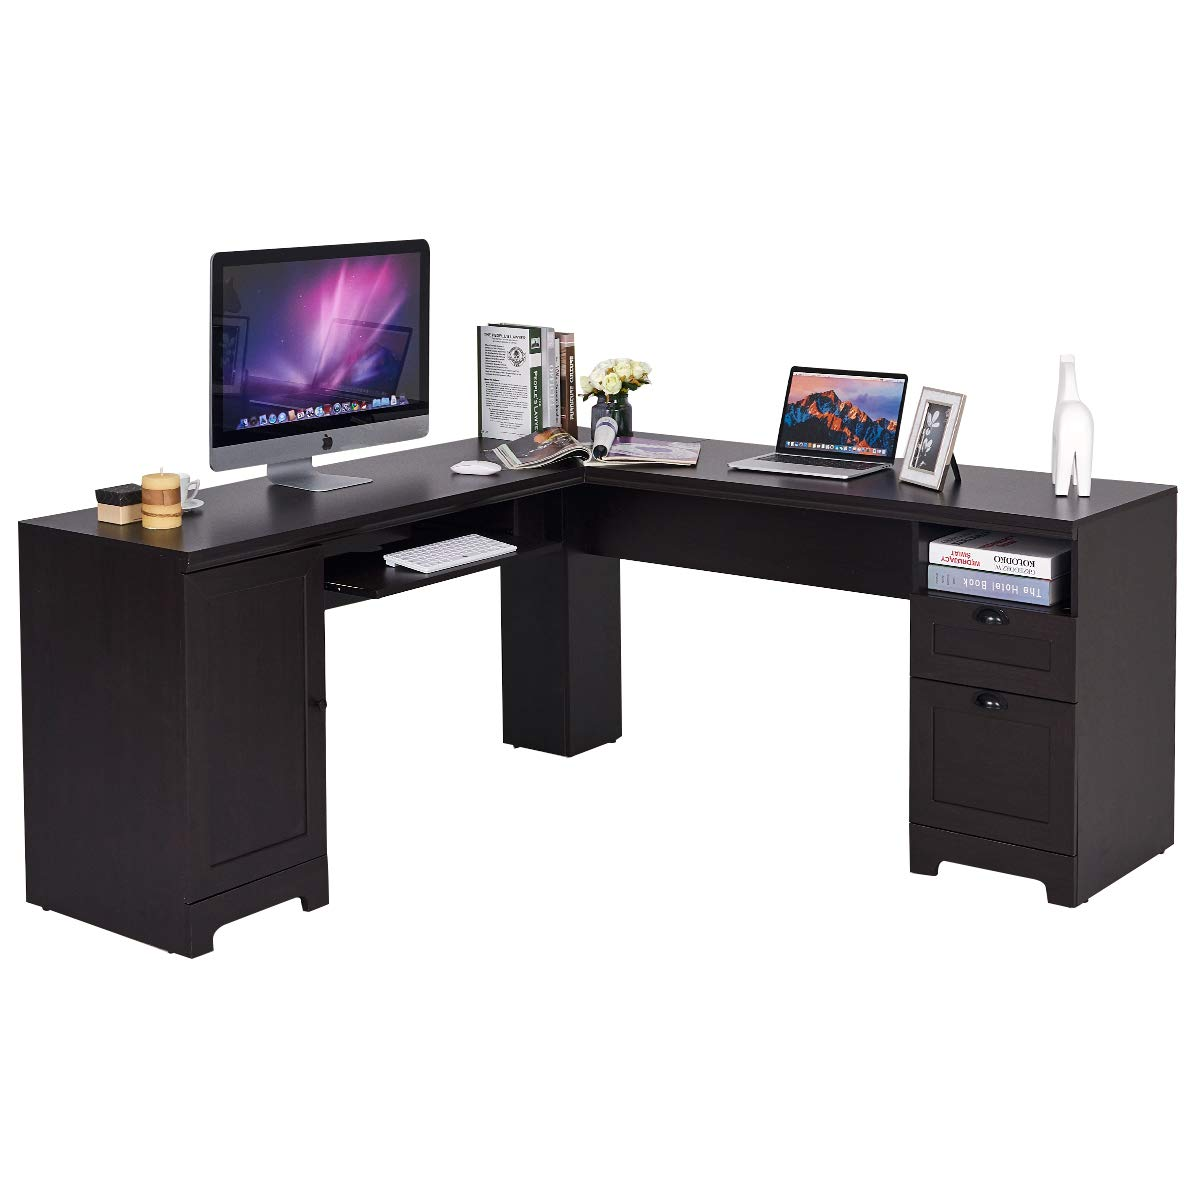 Tangkula 66'' × 66'' L-Shaped Desk, Corner Computer Desk, with Drawers and Storage Shelf, Home Office Desk, Sturdy and Space-Saving Writing Table,Black by Tangkula